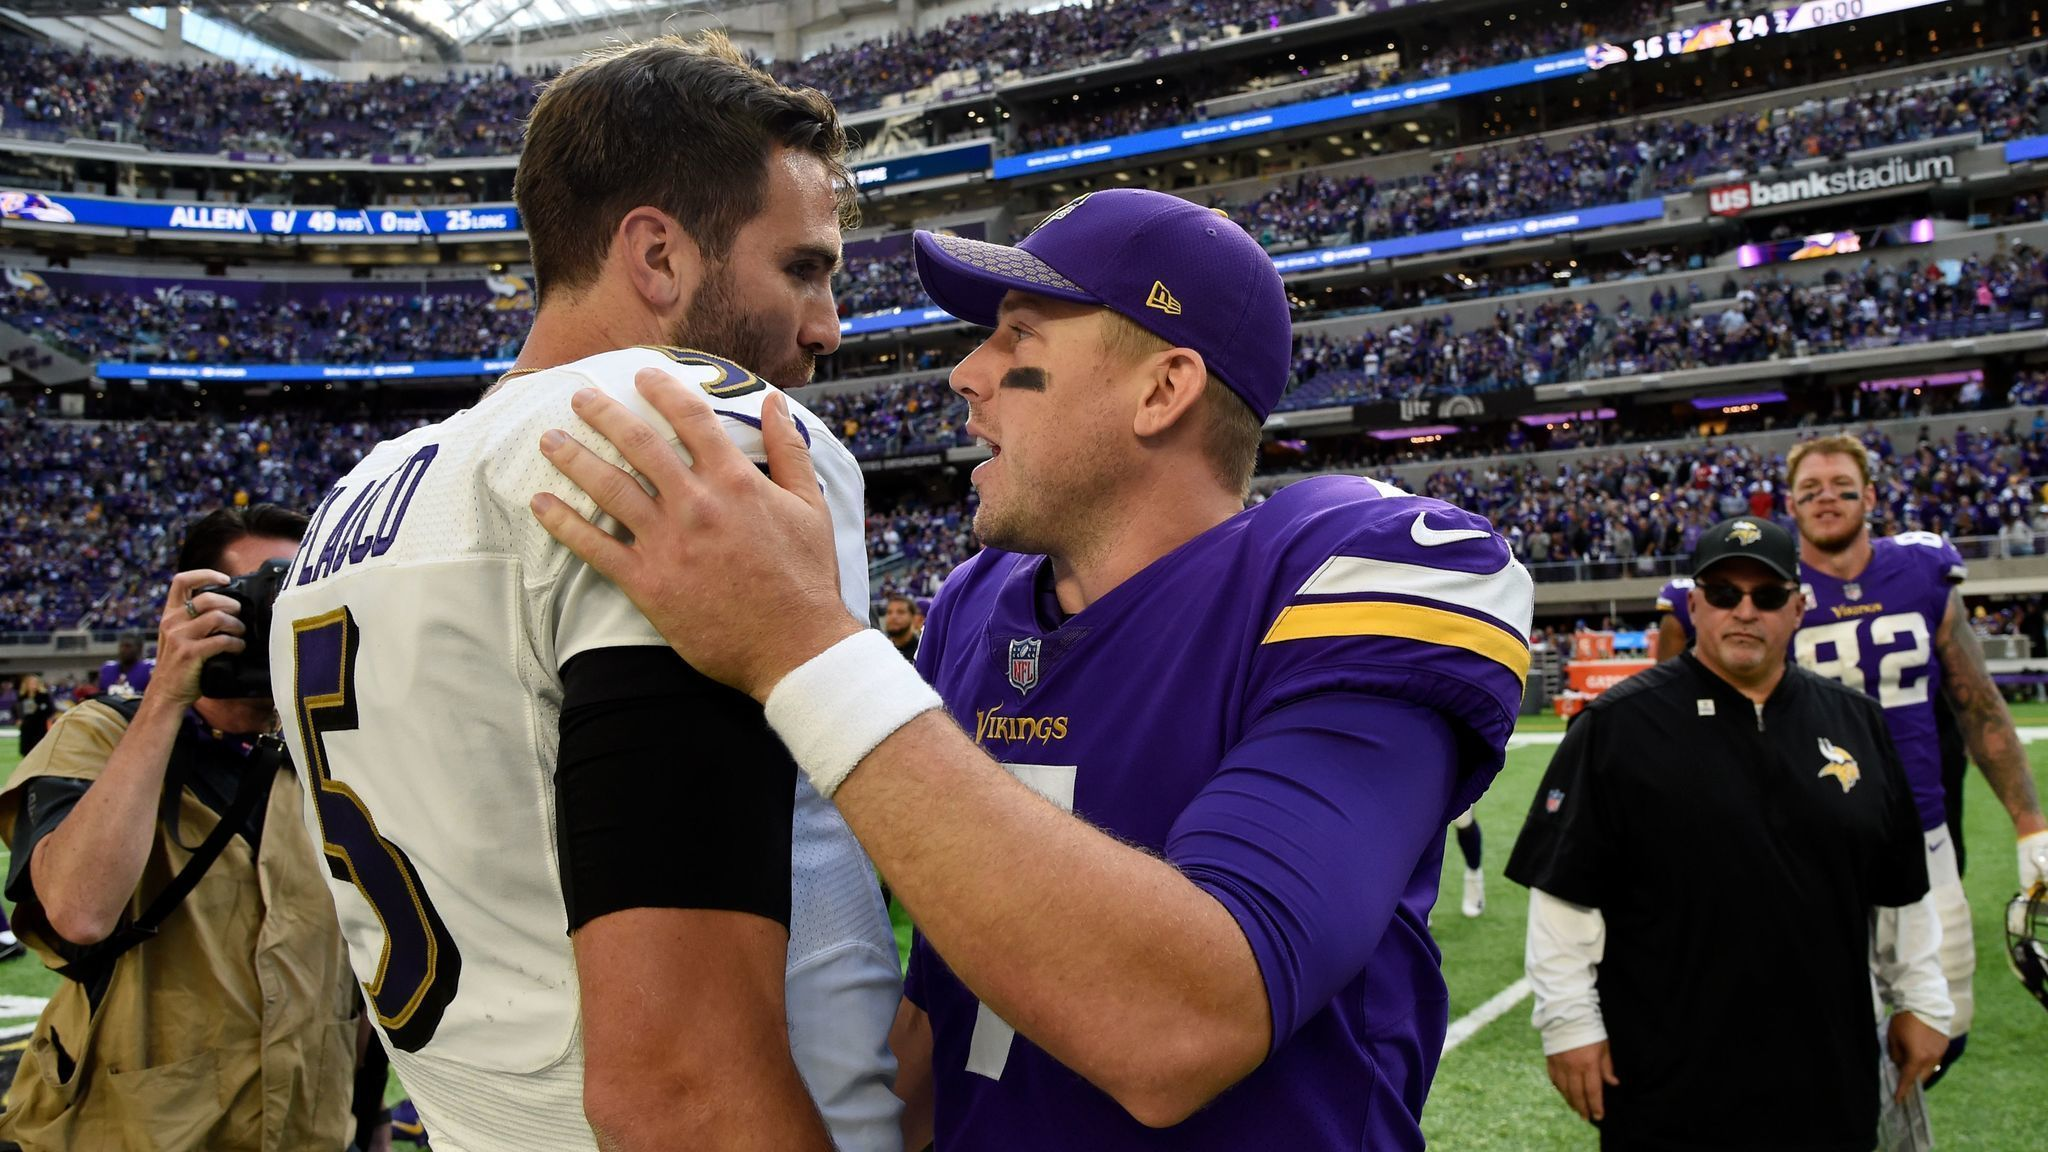 Bs-sp-preston-ravens-must-win-thursday-against-dolphins-20171023